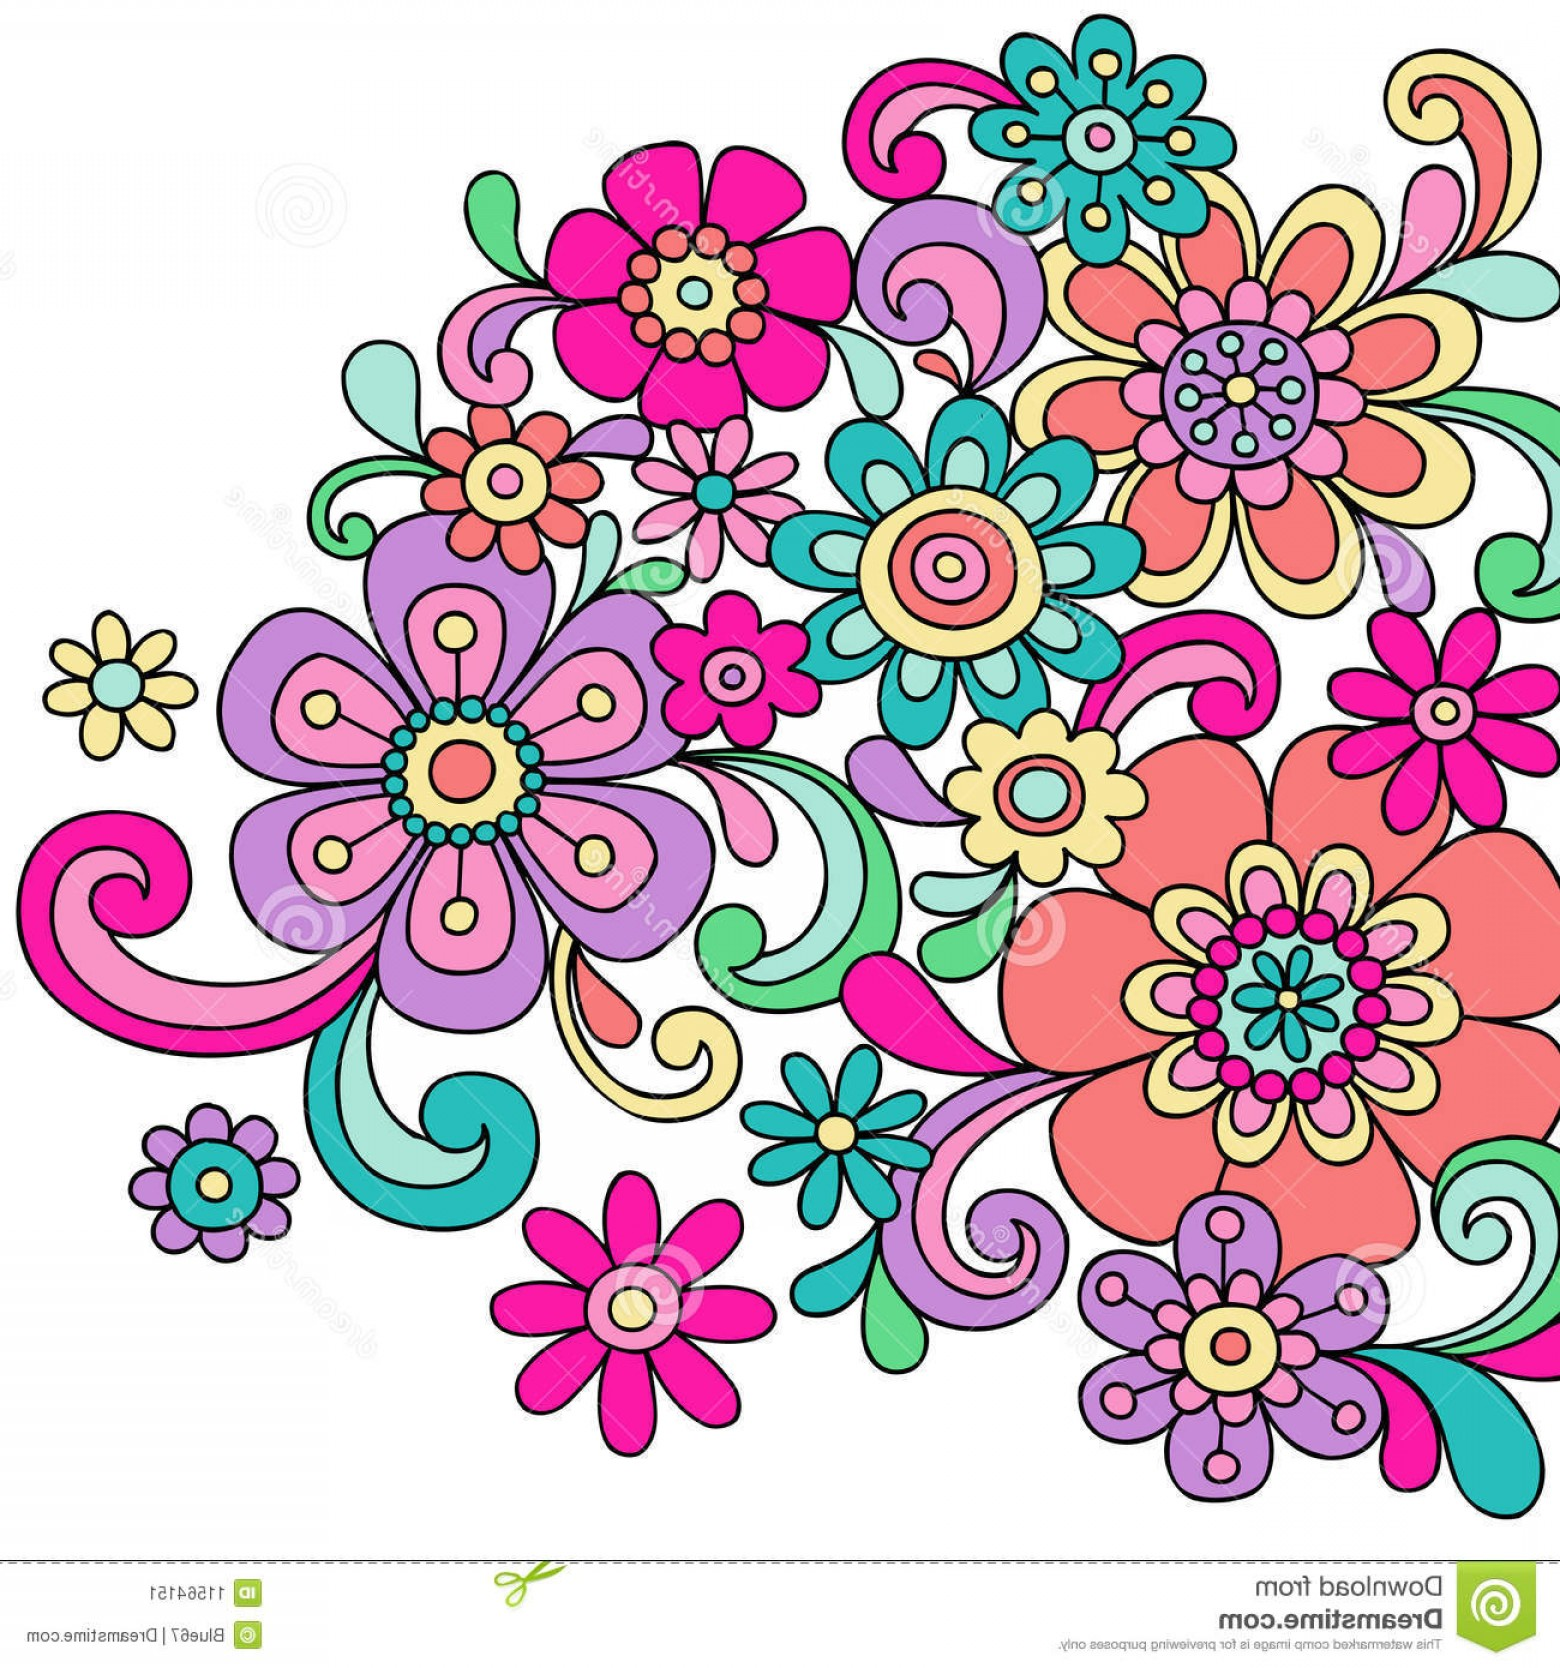 Paisley Swirl Flower Vector: Stock Image Psychedelic Doodle Henna Flowers Vector Image